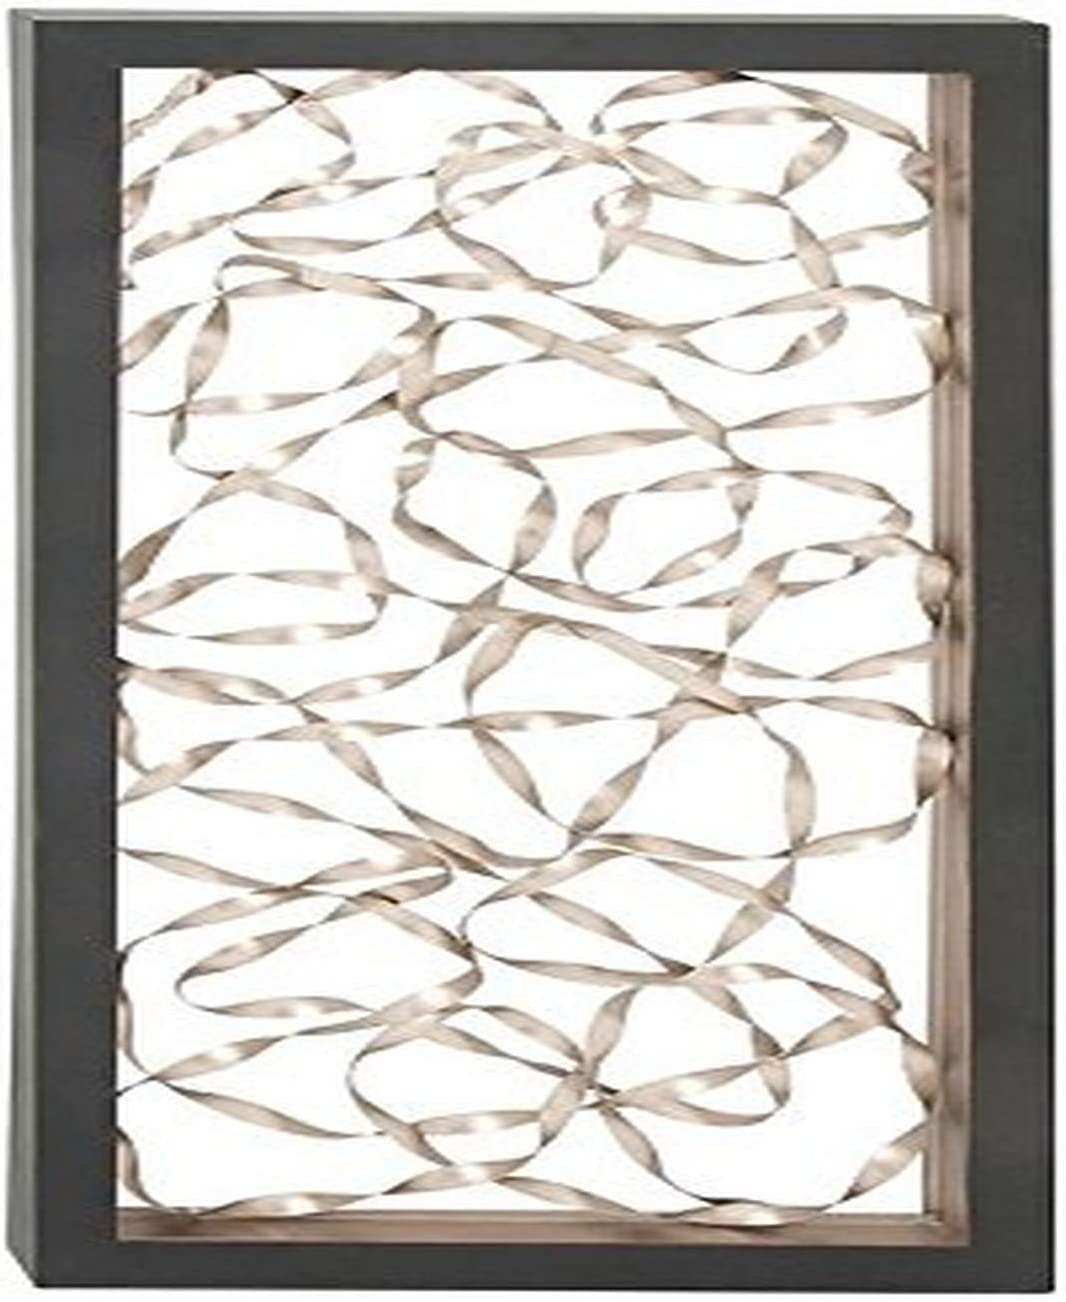 "Deco 79 56844 Captivating Metal Wall Decor, 24"" W x 52"" H"